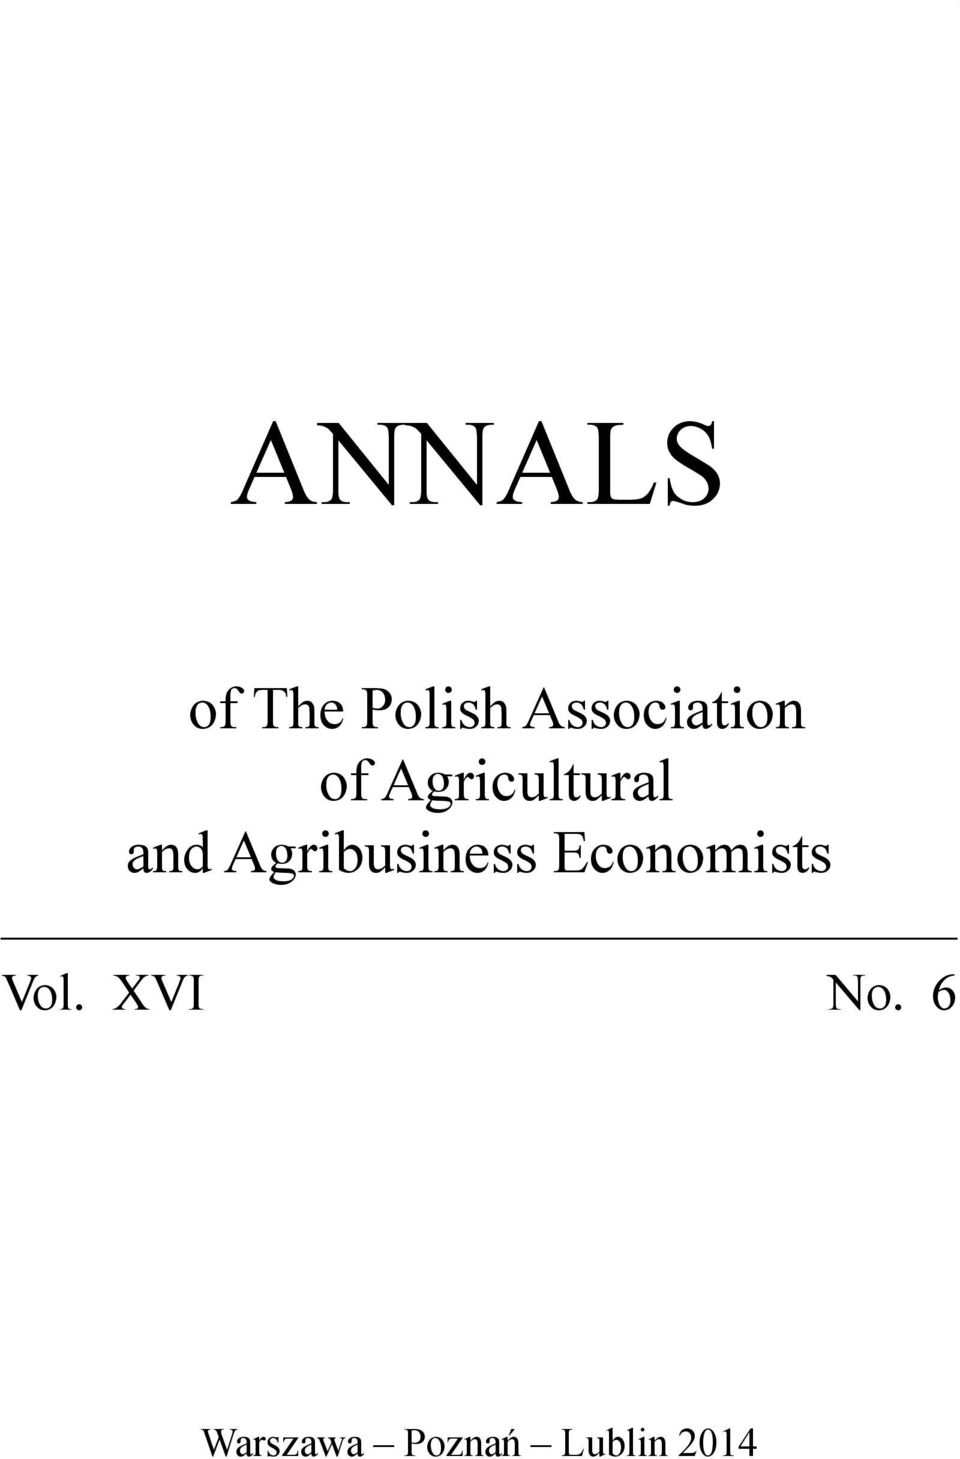 and Agribusiness Economists